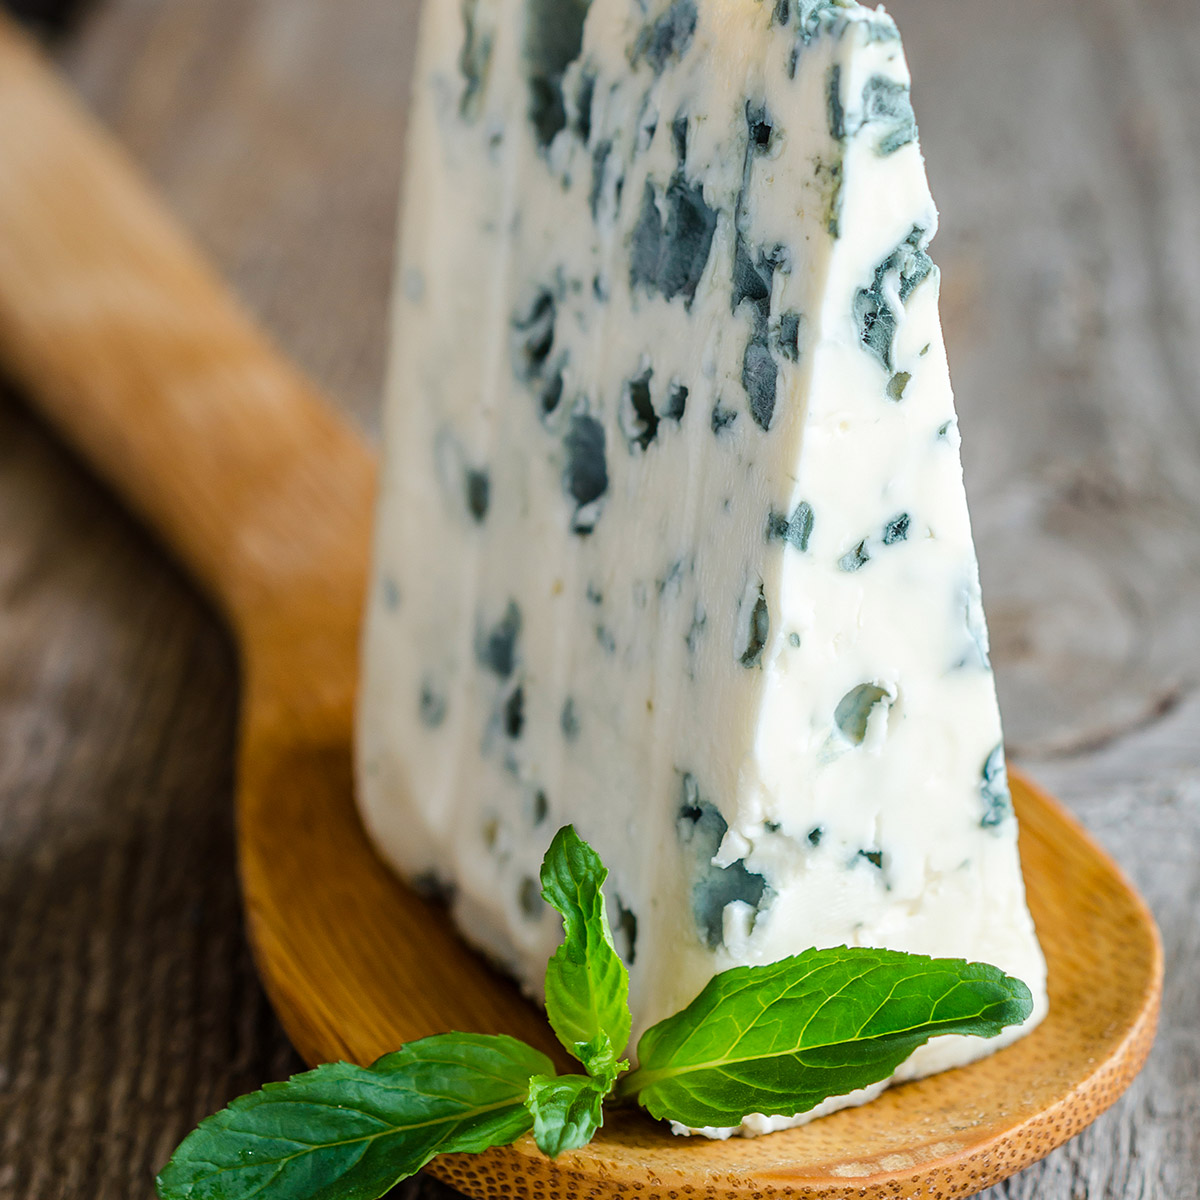 Noble Late Harvest Food suggestion - Blue Cheese